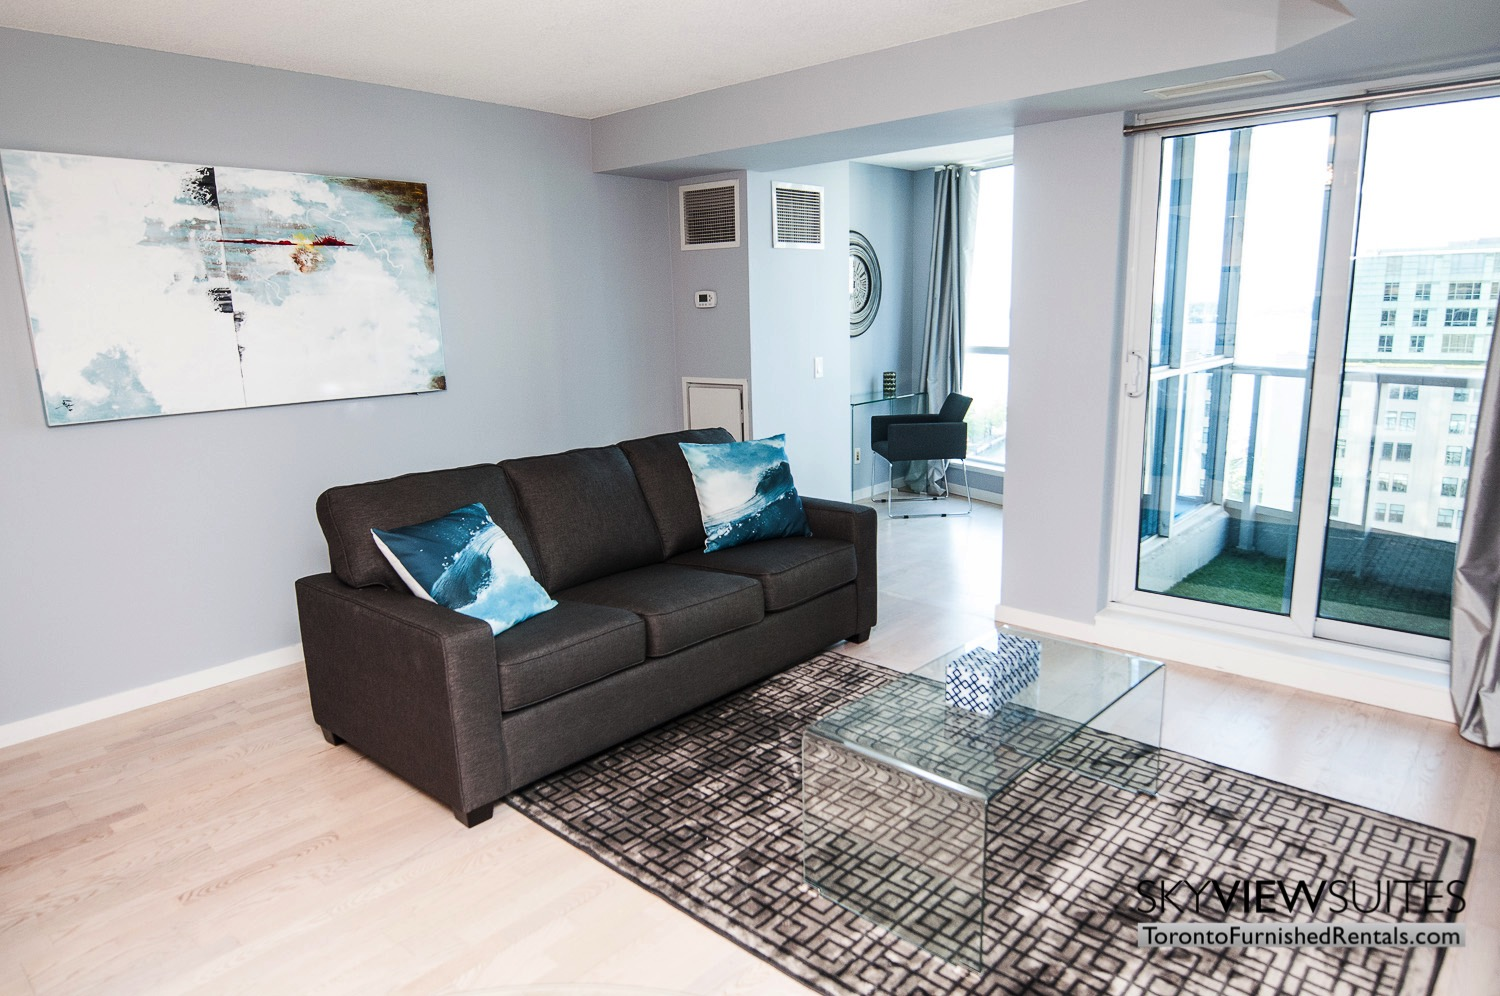 furnished rentals toronto waterfront blue pillow couch